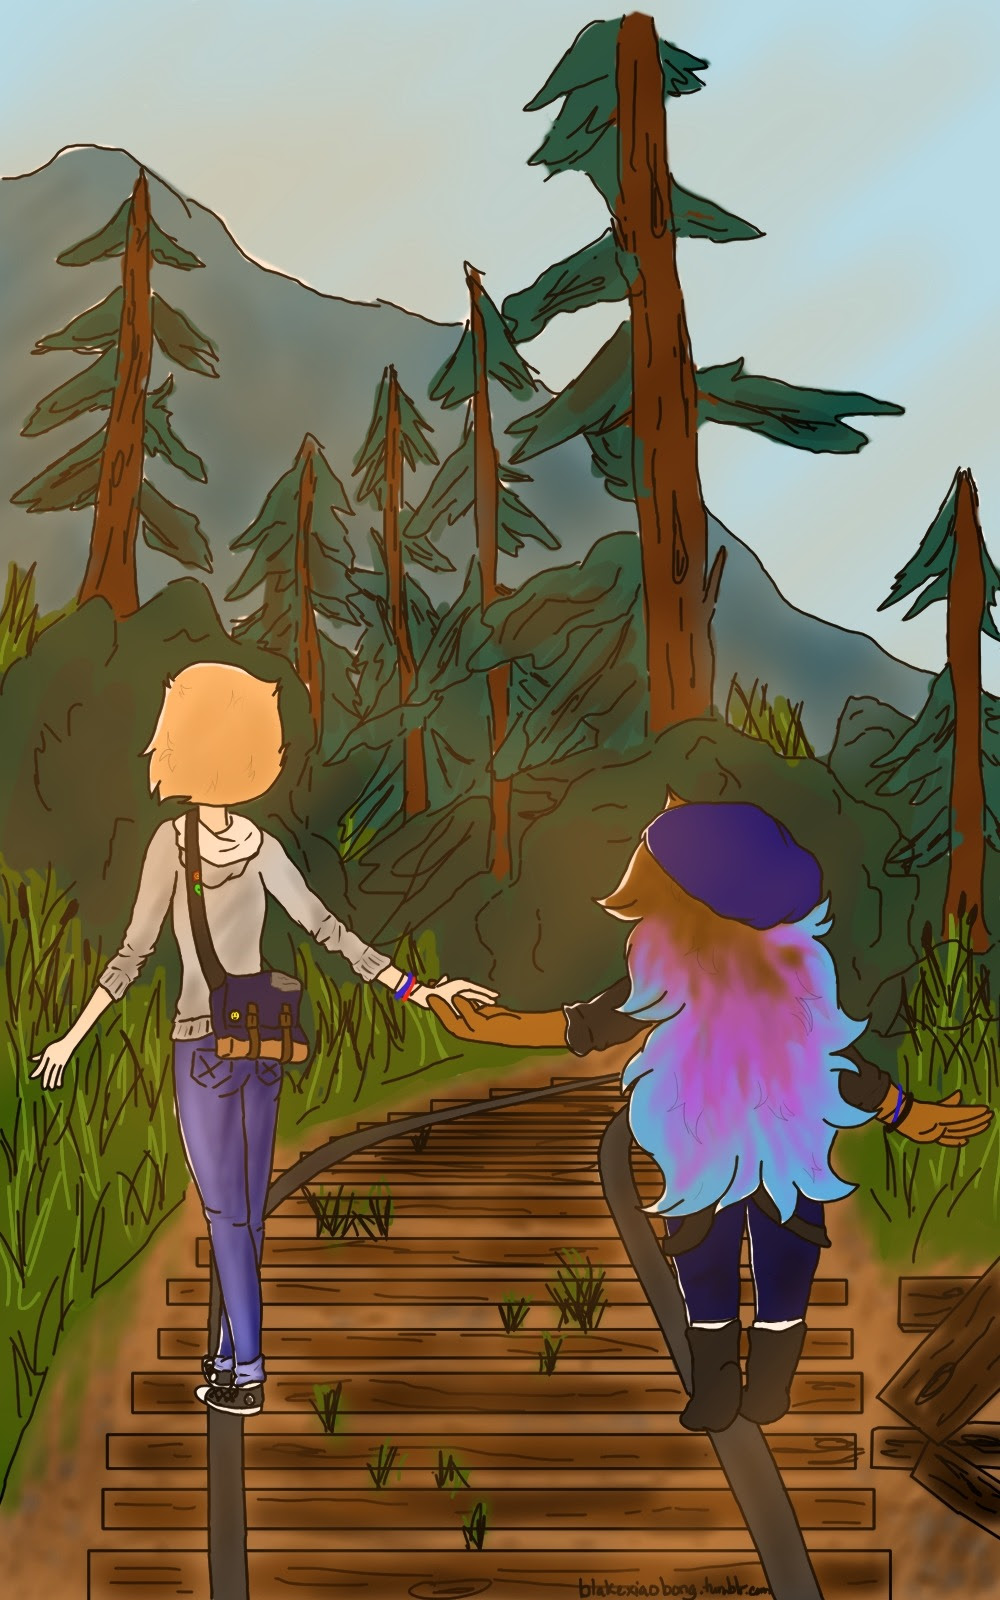 """""""Amethyst ?"""" """"Yeah P ?"""" """"You know you're my partner in time right ?"""" """"..heh, as long as you're my partner in crime~"""" —- Day 2: Crossover Life is Strange @fuckyeahpearlmethyst @annadesu"""